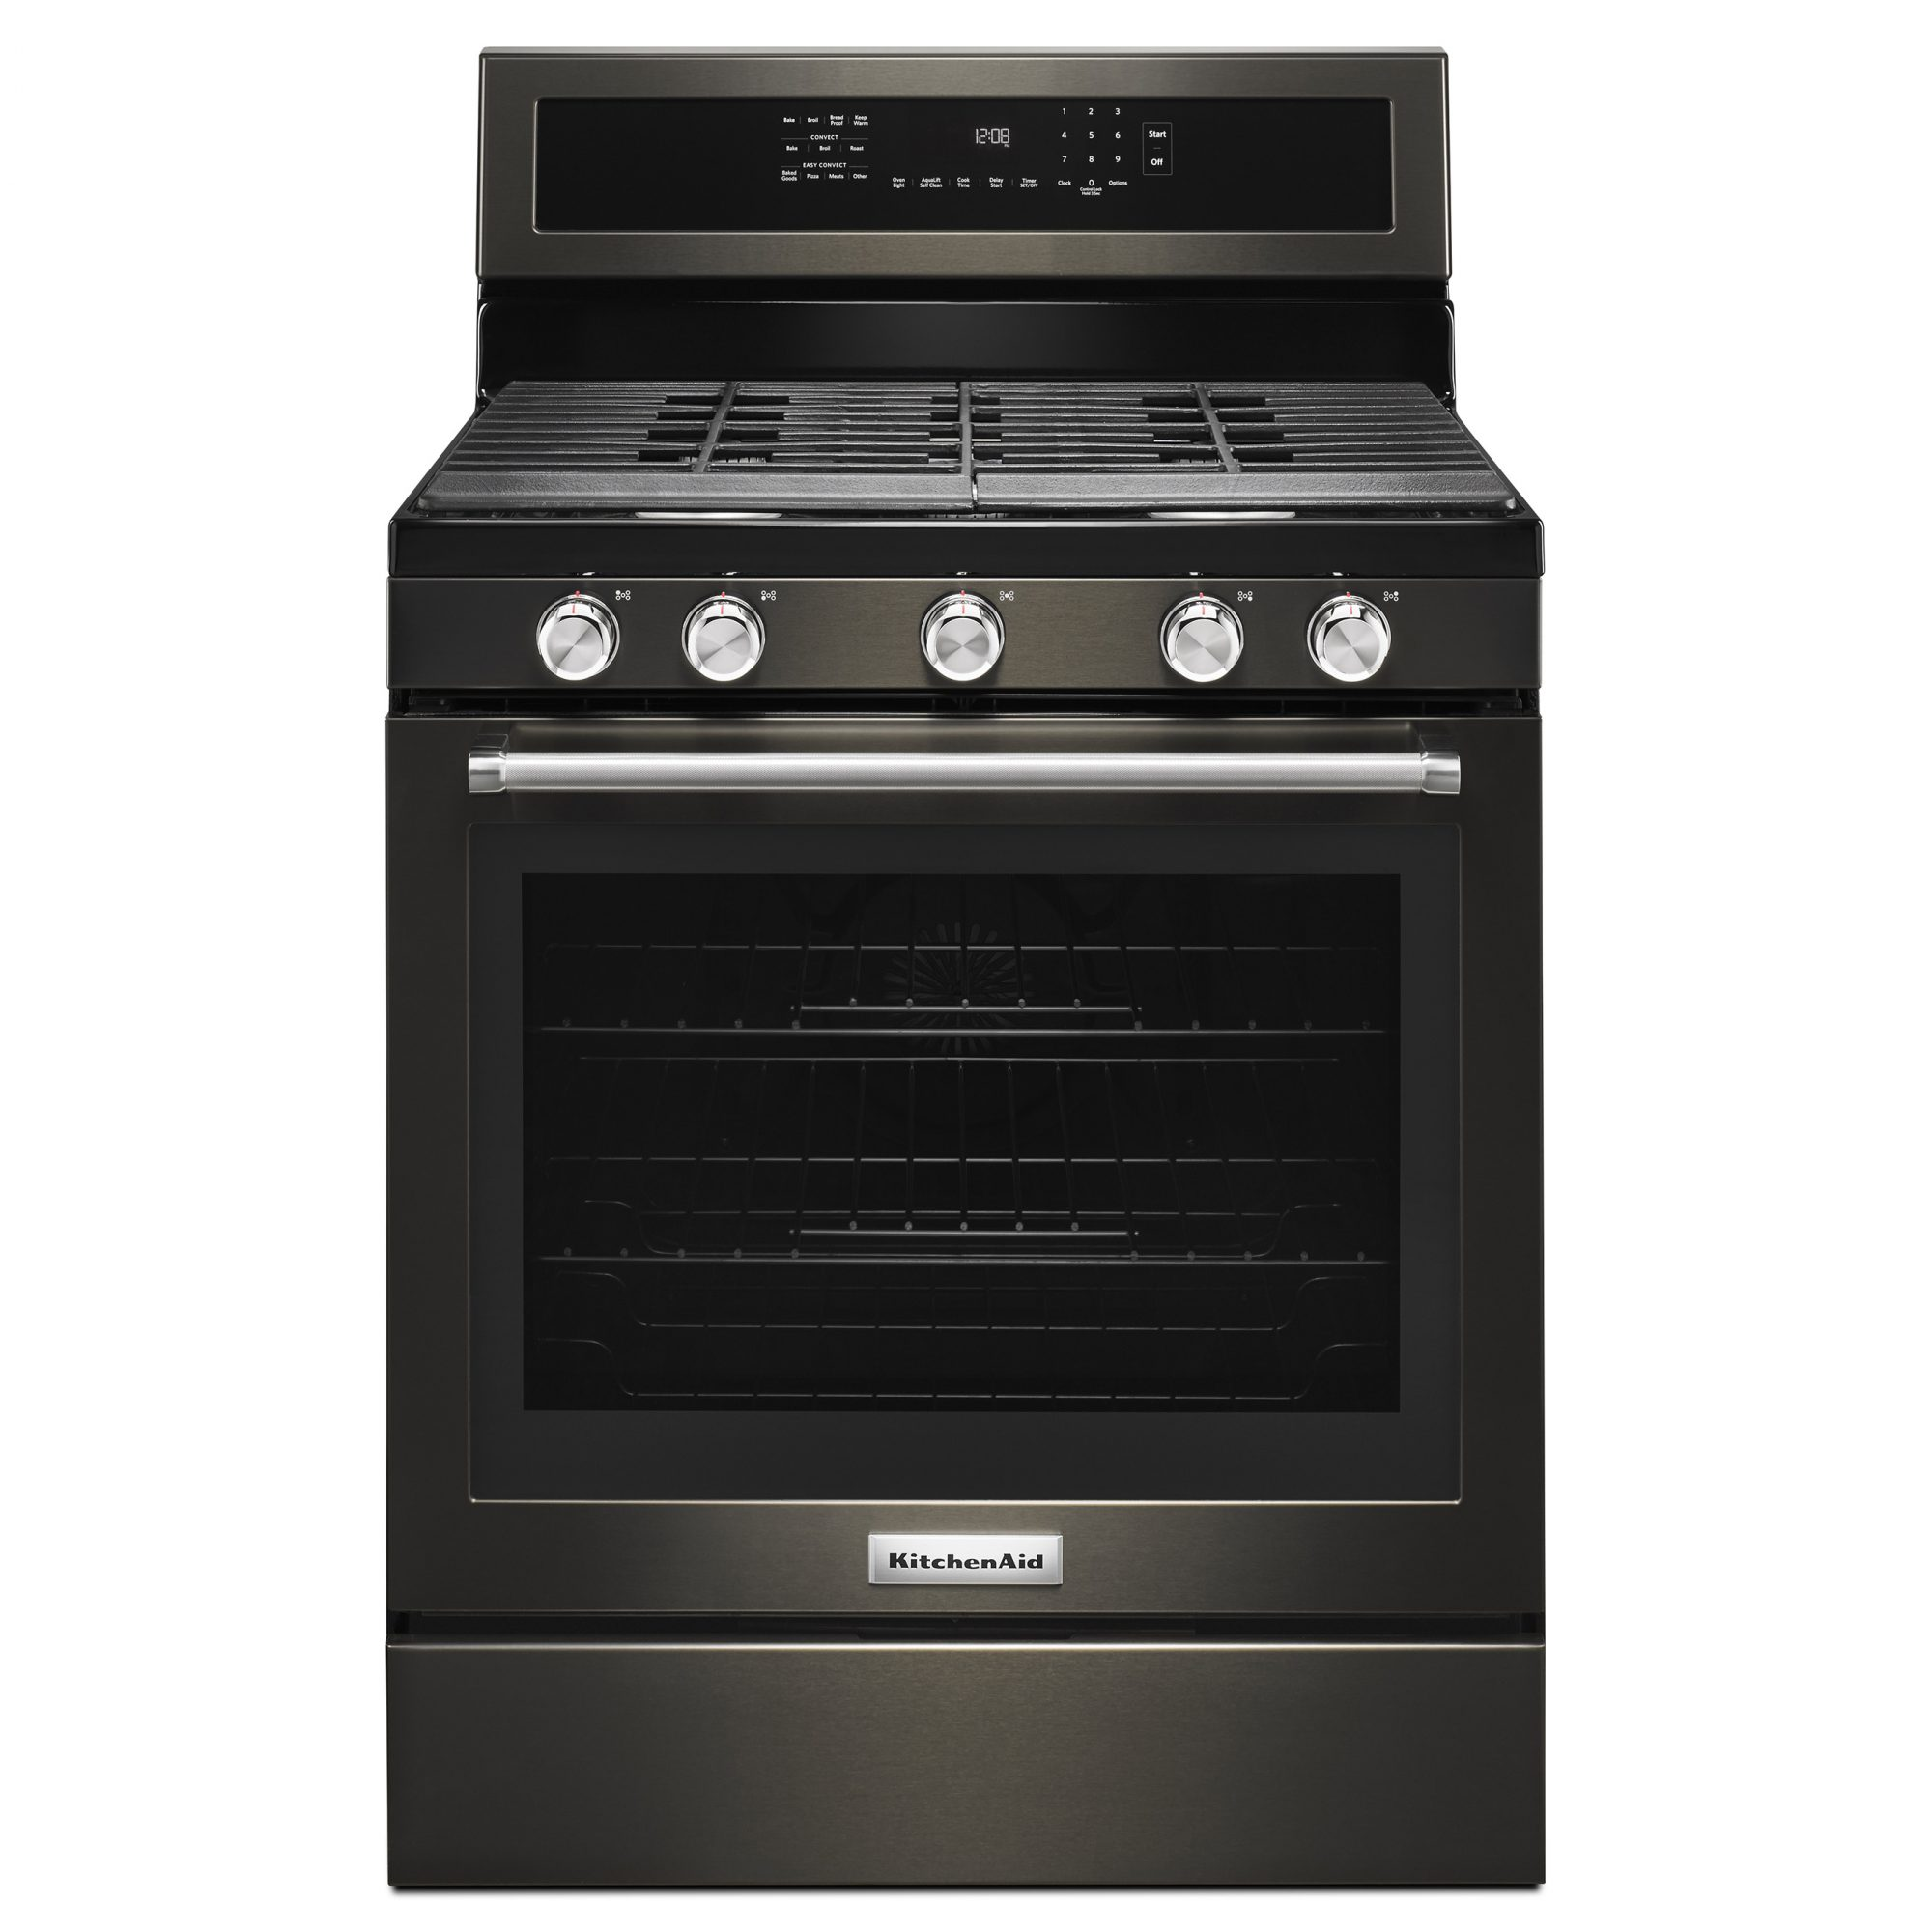 Kitchenaid Bold Black Stainless: Look At These Beautiful Matte Black Major Appliances